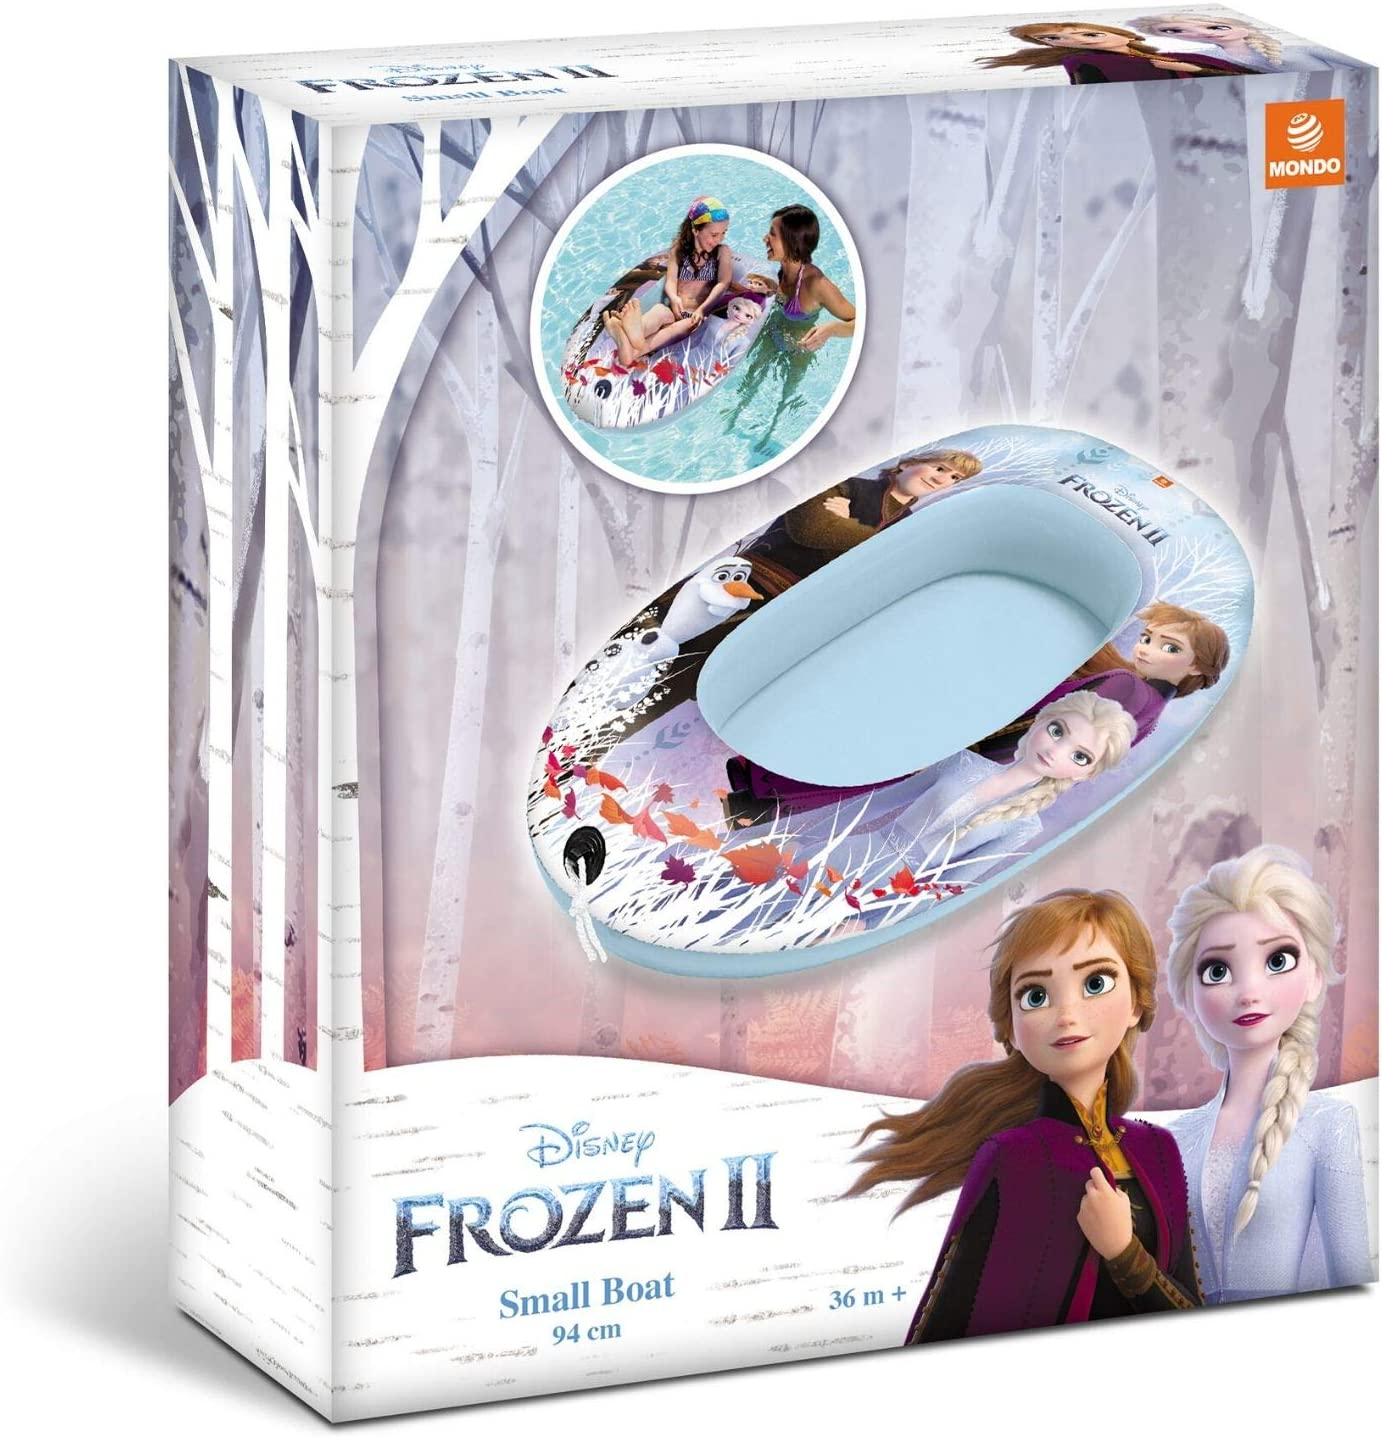 Mondo Frozen Barca Hinchable, 17.5 x 5.6 x 5.6 (16526): Amazon.es ...